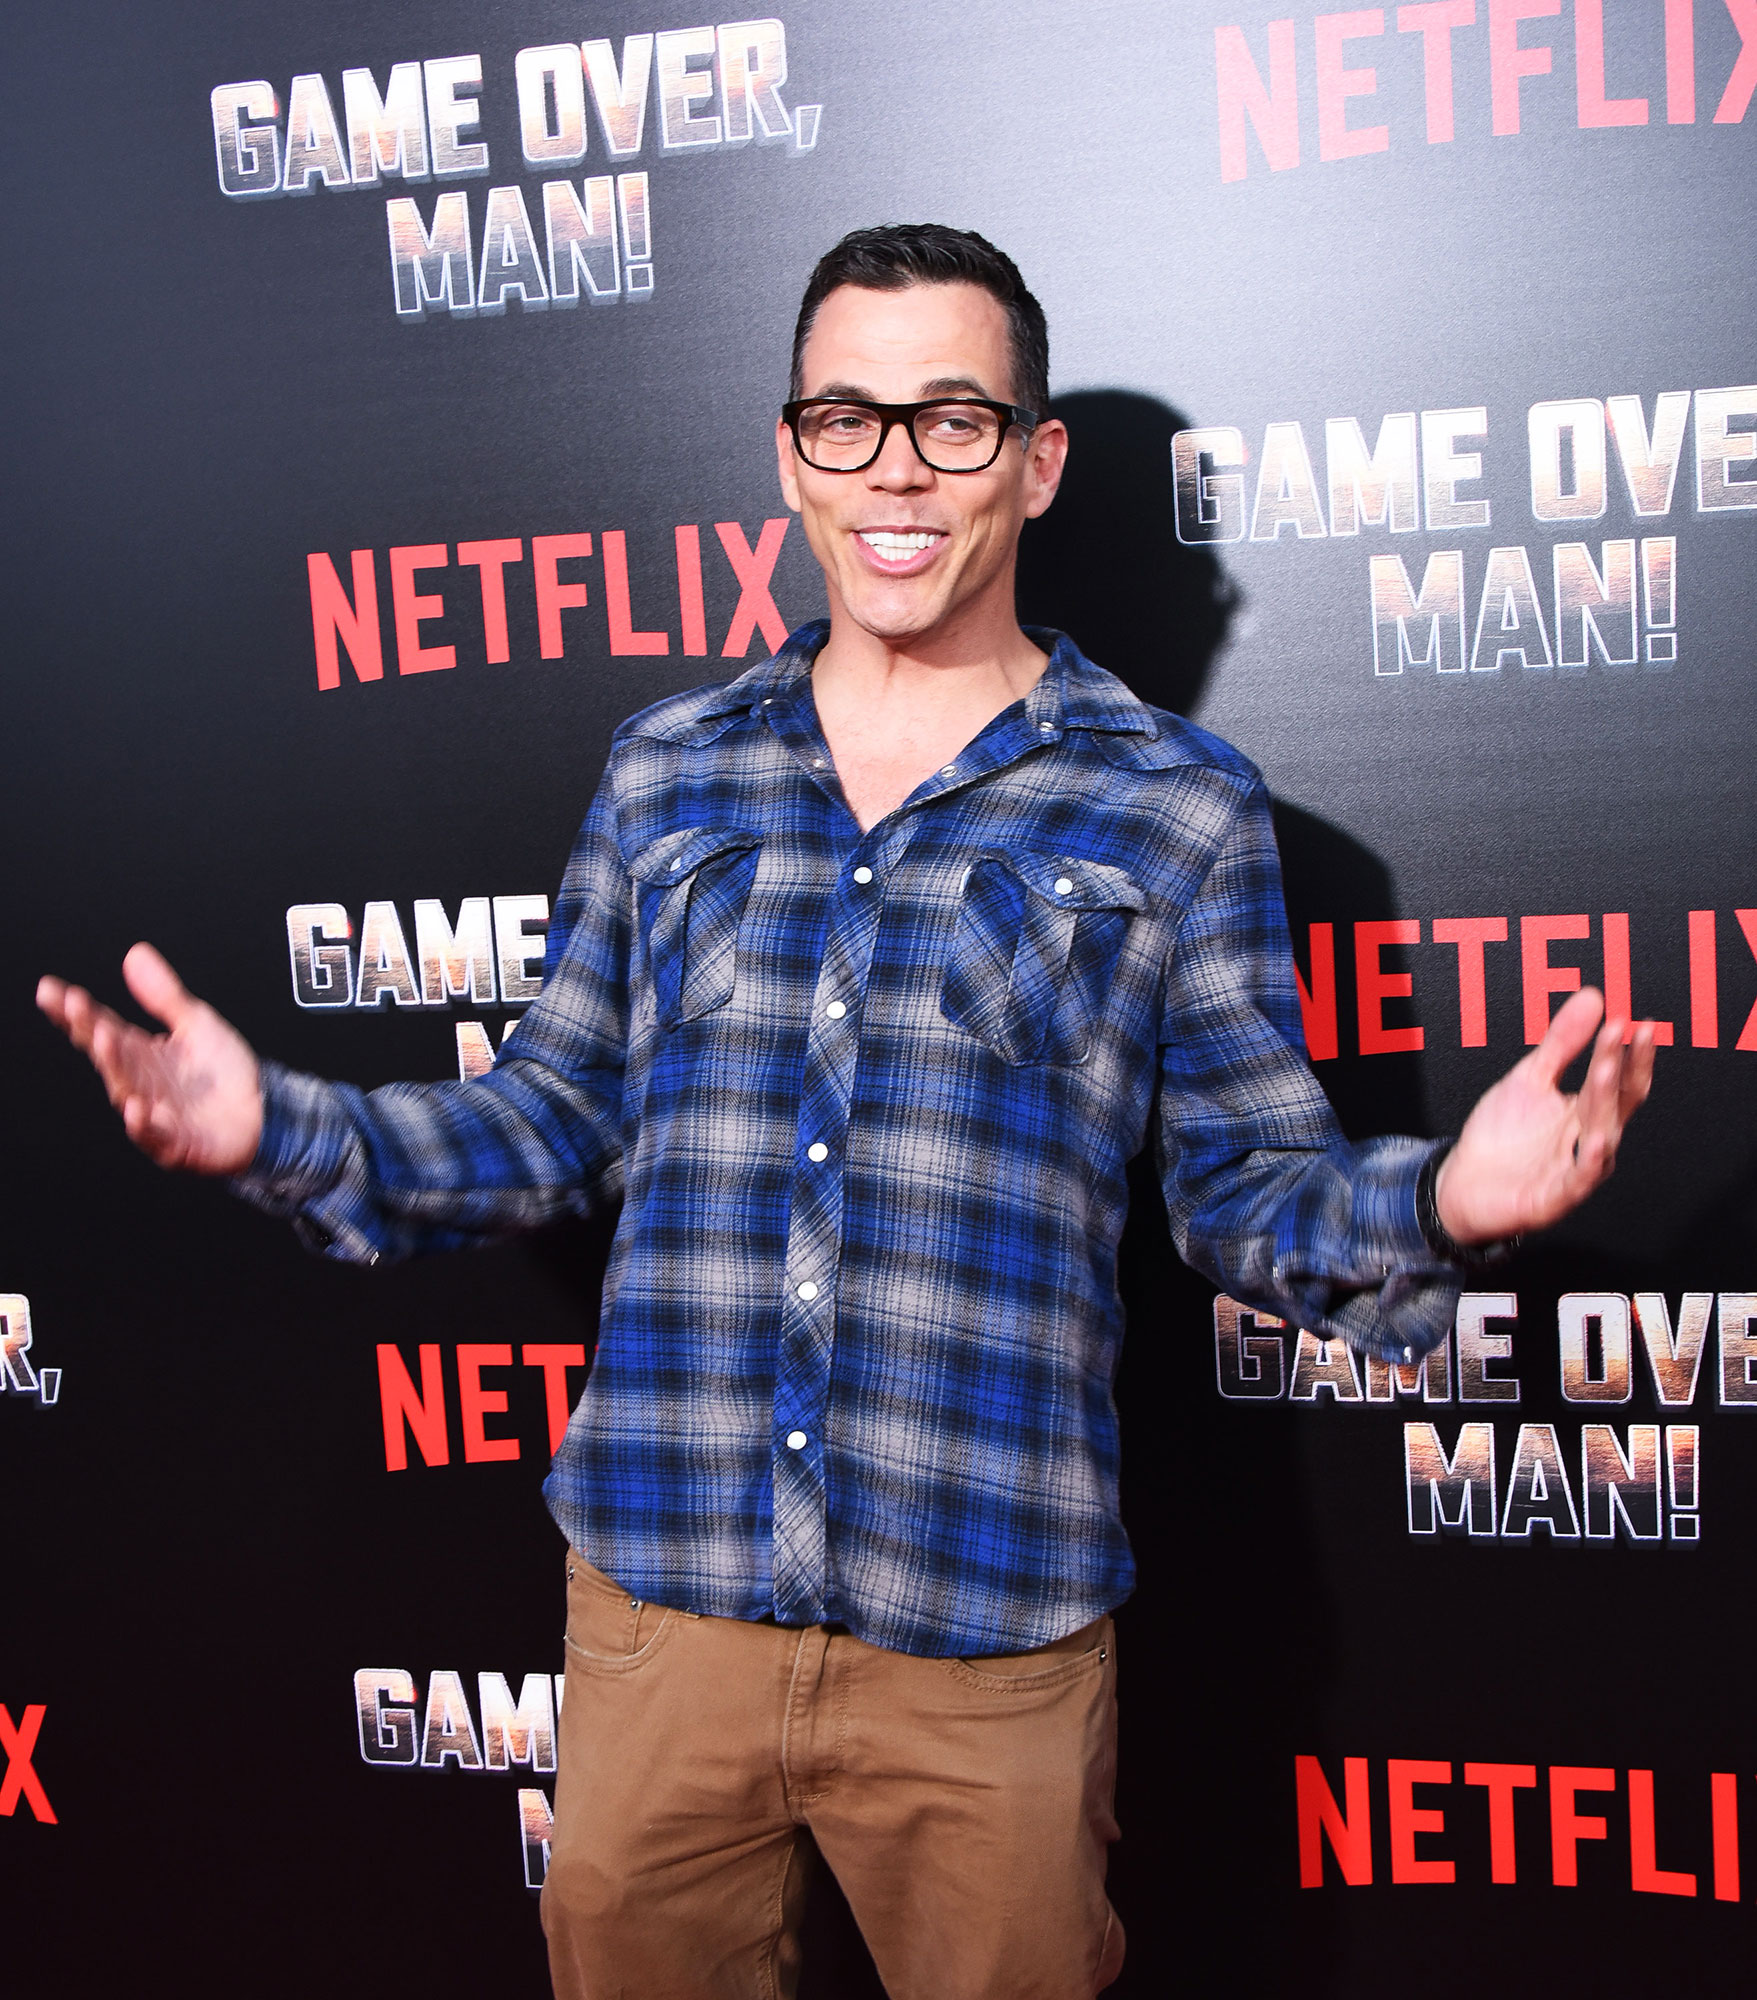 """Steve-O - The Jackass alum confessed that he once snorted cocaine that had been spattered with the blood of his HIV-positive drug dealer in an interview for In Depth With Graham Bensinger on January 16. """"This is how desperate and pathetic my addiction was,"""" he said."""